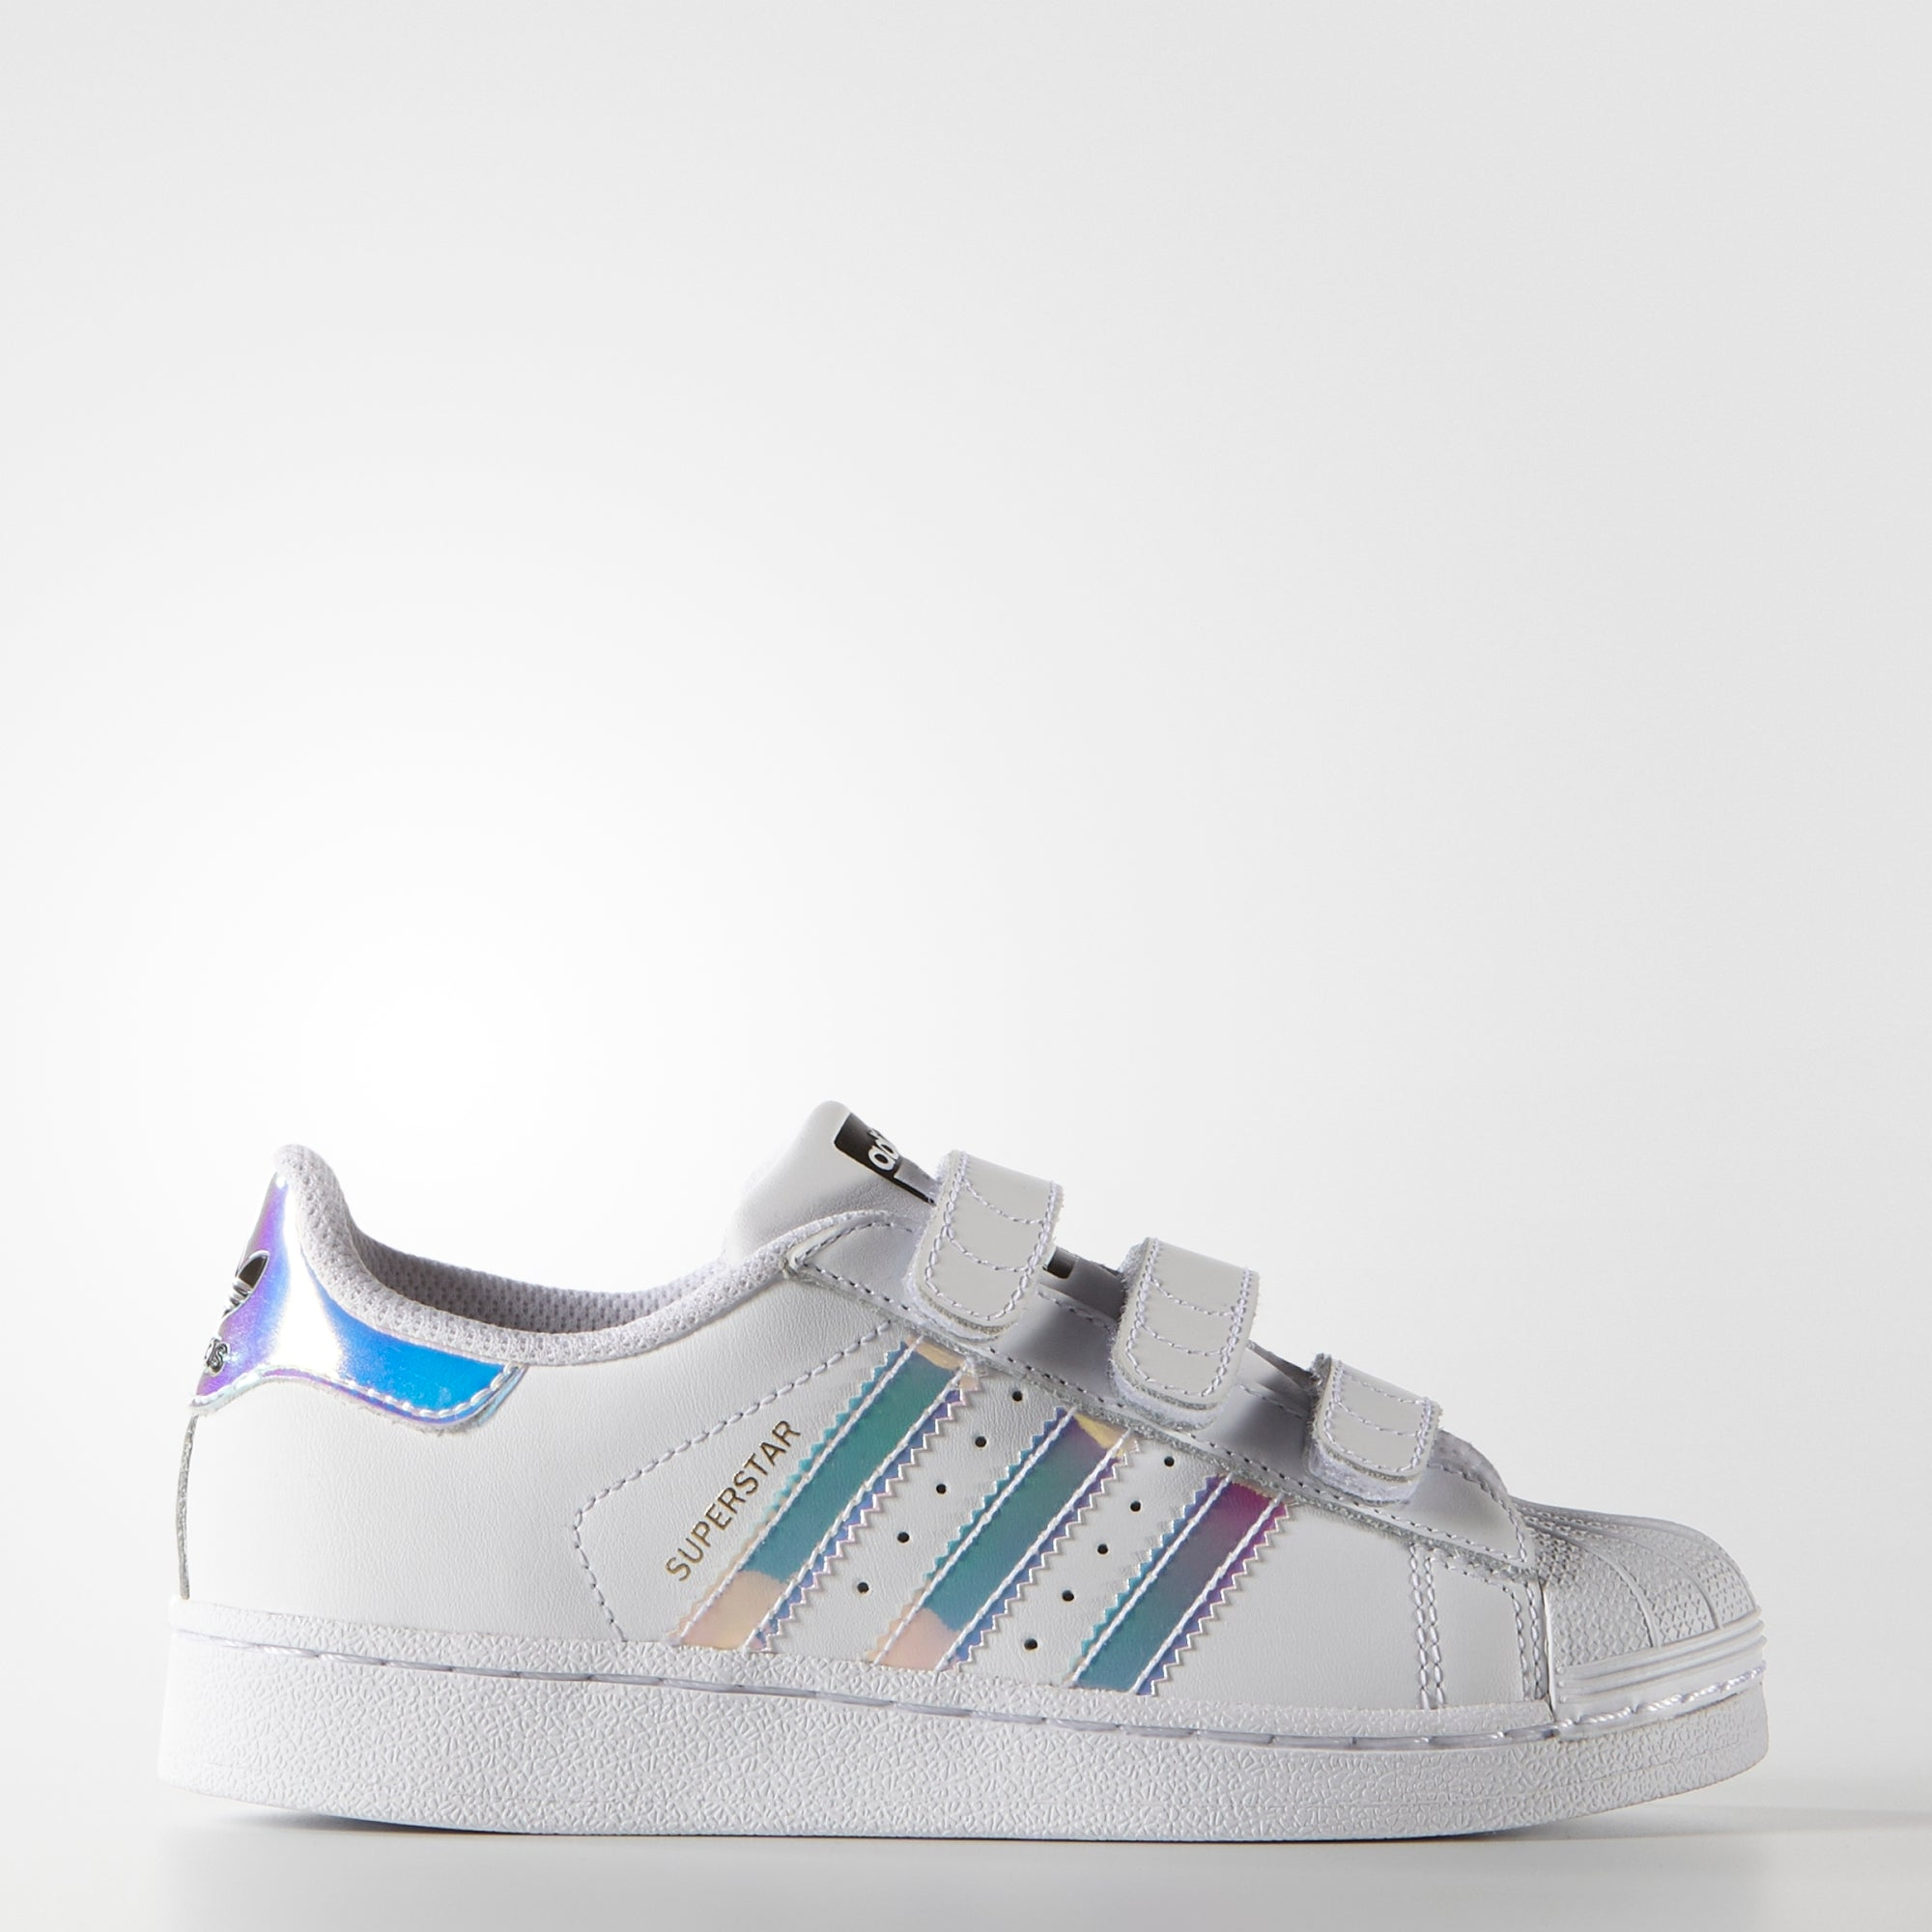 2bc8f7d2627c Kid s adidas Originals Superstar Velcro Shoes White Hologram Iridescent